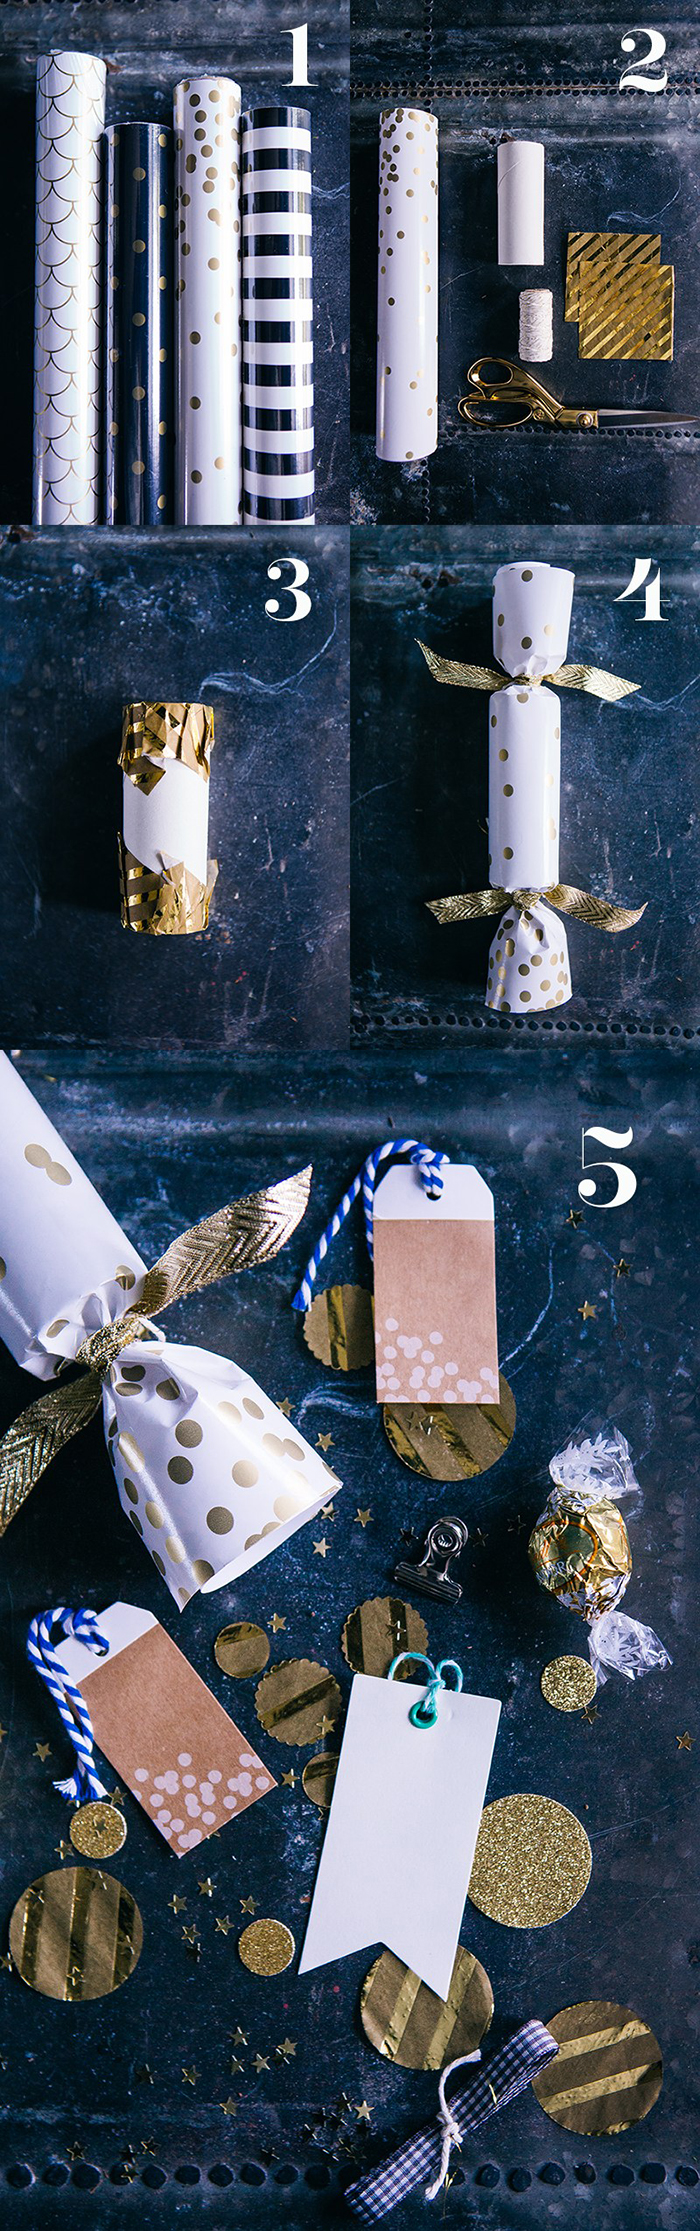 DIY Modern Crackers - Poppers